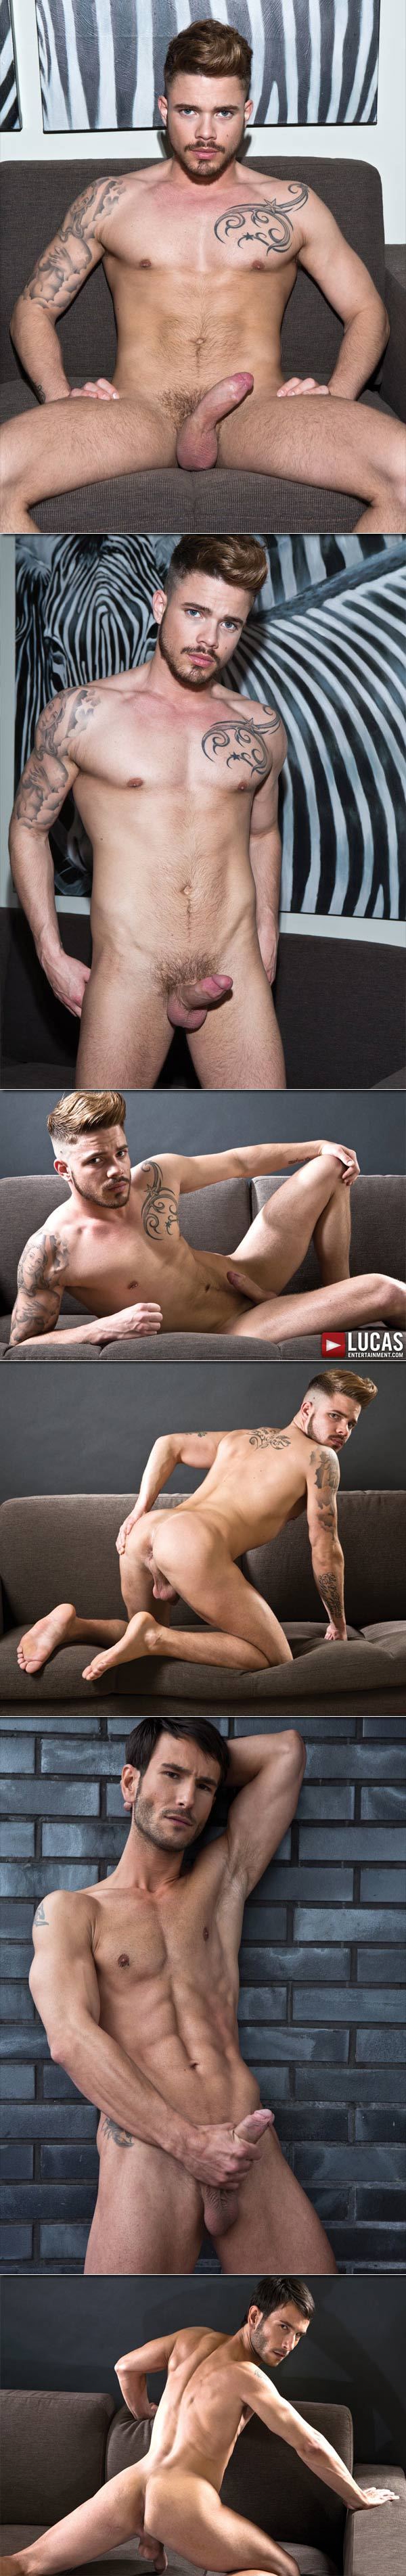 Valentino Medici, Fabio Lopez & Mark Sanz (Bareback Web Exclusive) at LucasEntertainment.com